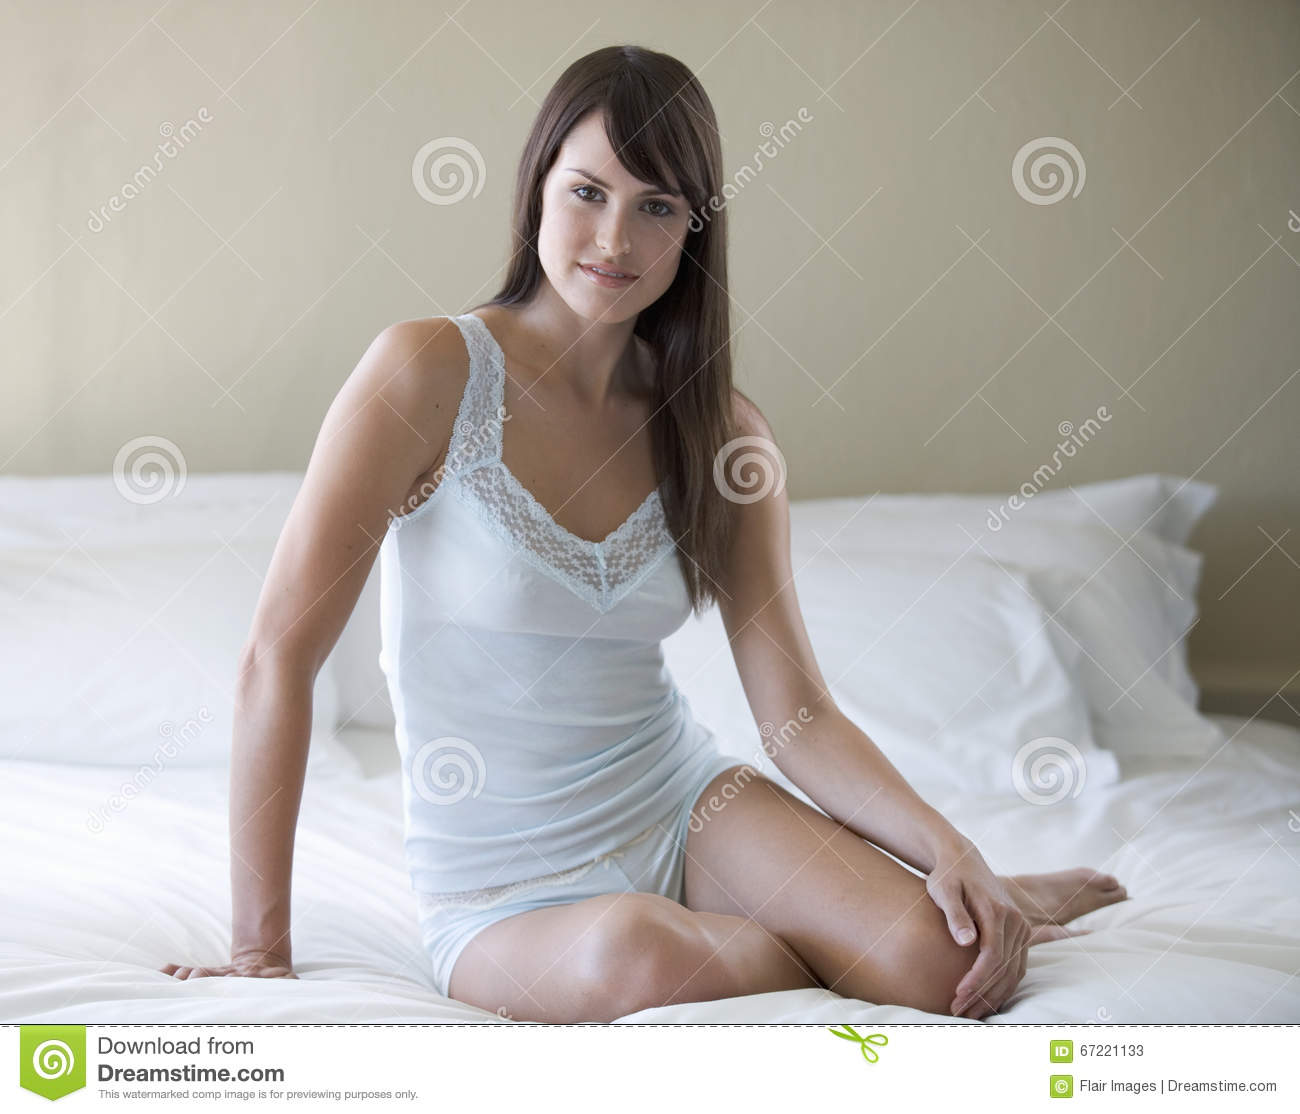 A young woman sitting on a bed